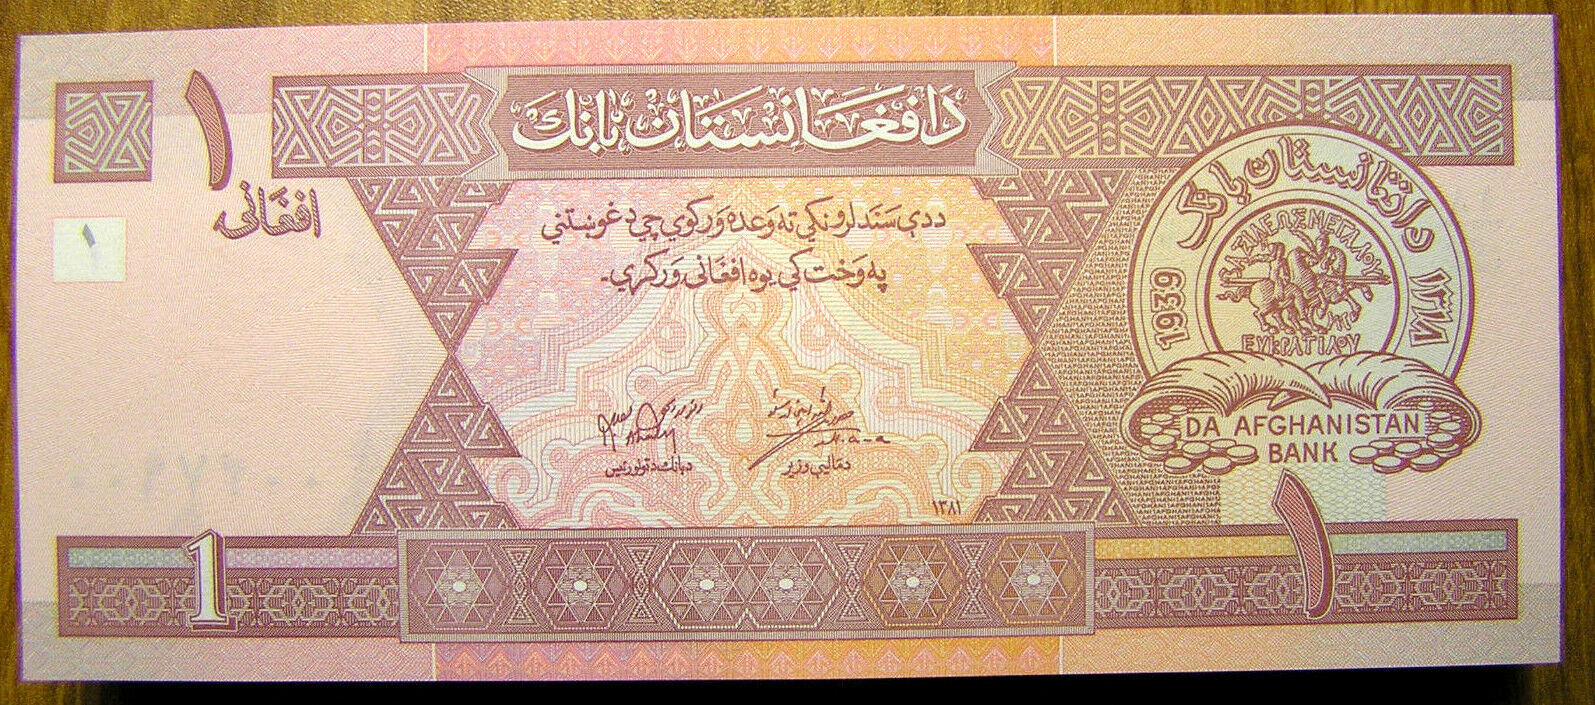 Money of Afghanistan ▶ P-64 2002 Note 1 afghani World Banknote unc